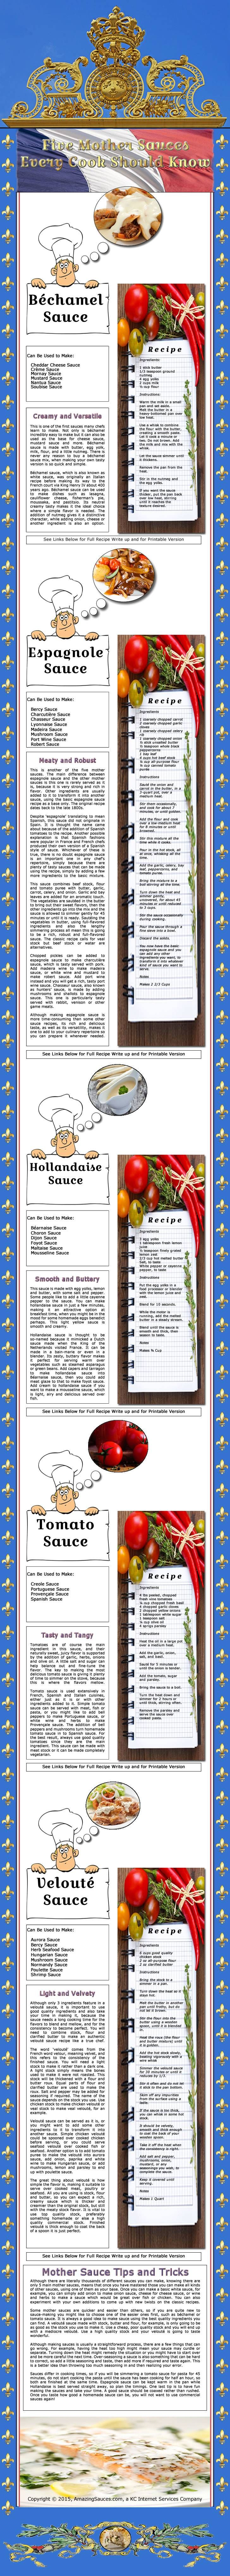 Five Mother Sauces Every Cook Should Know - Infograph showing the five main French Mother sauces and the other sauces that derive from them commonly used in the making of most sauces for cooking. Layout for quick reference to what you need to know... #mothersauces